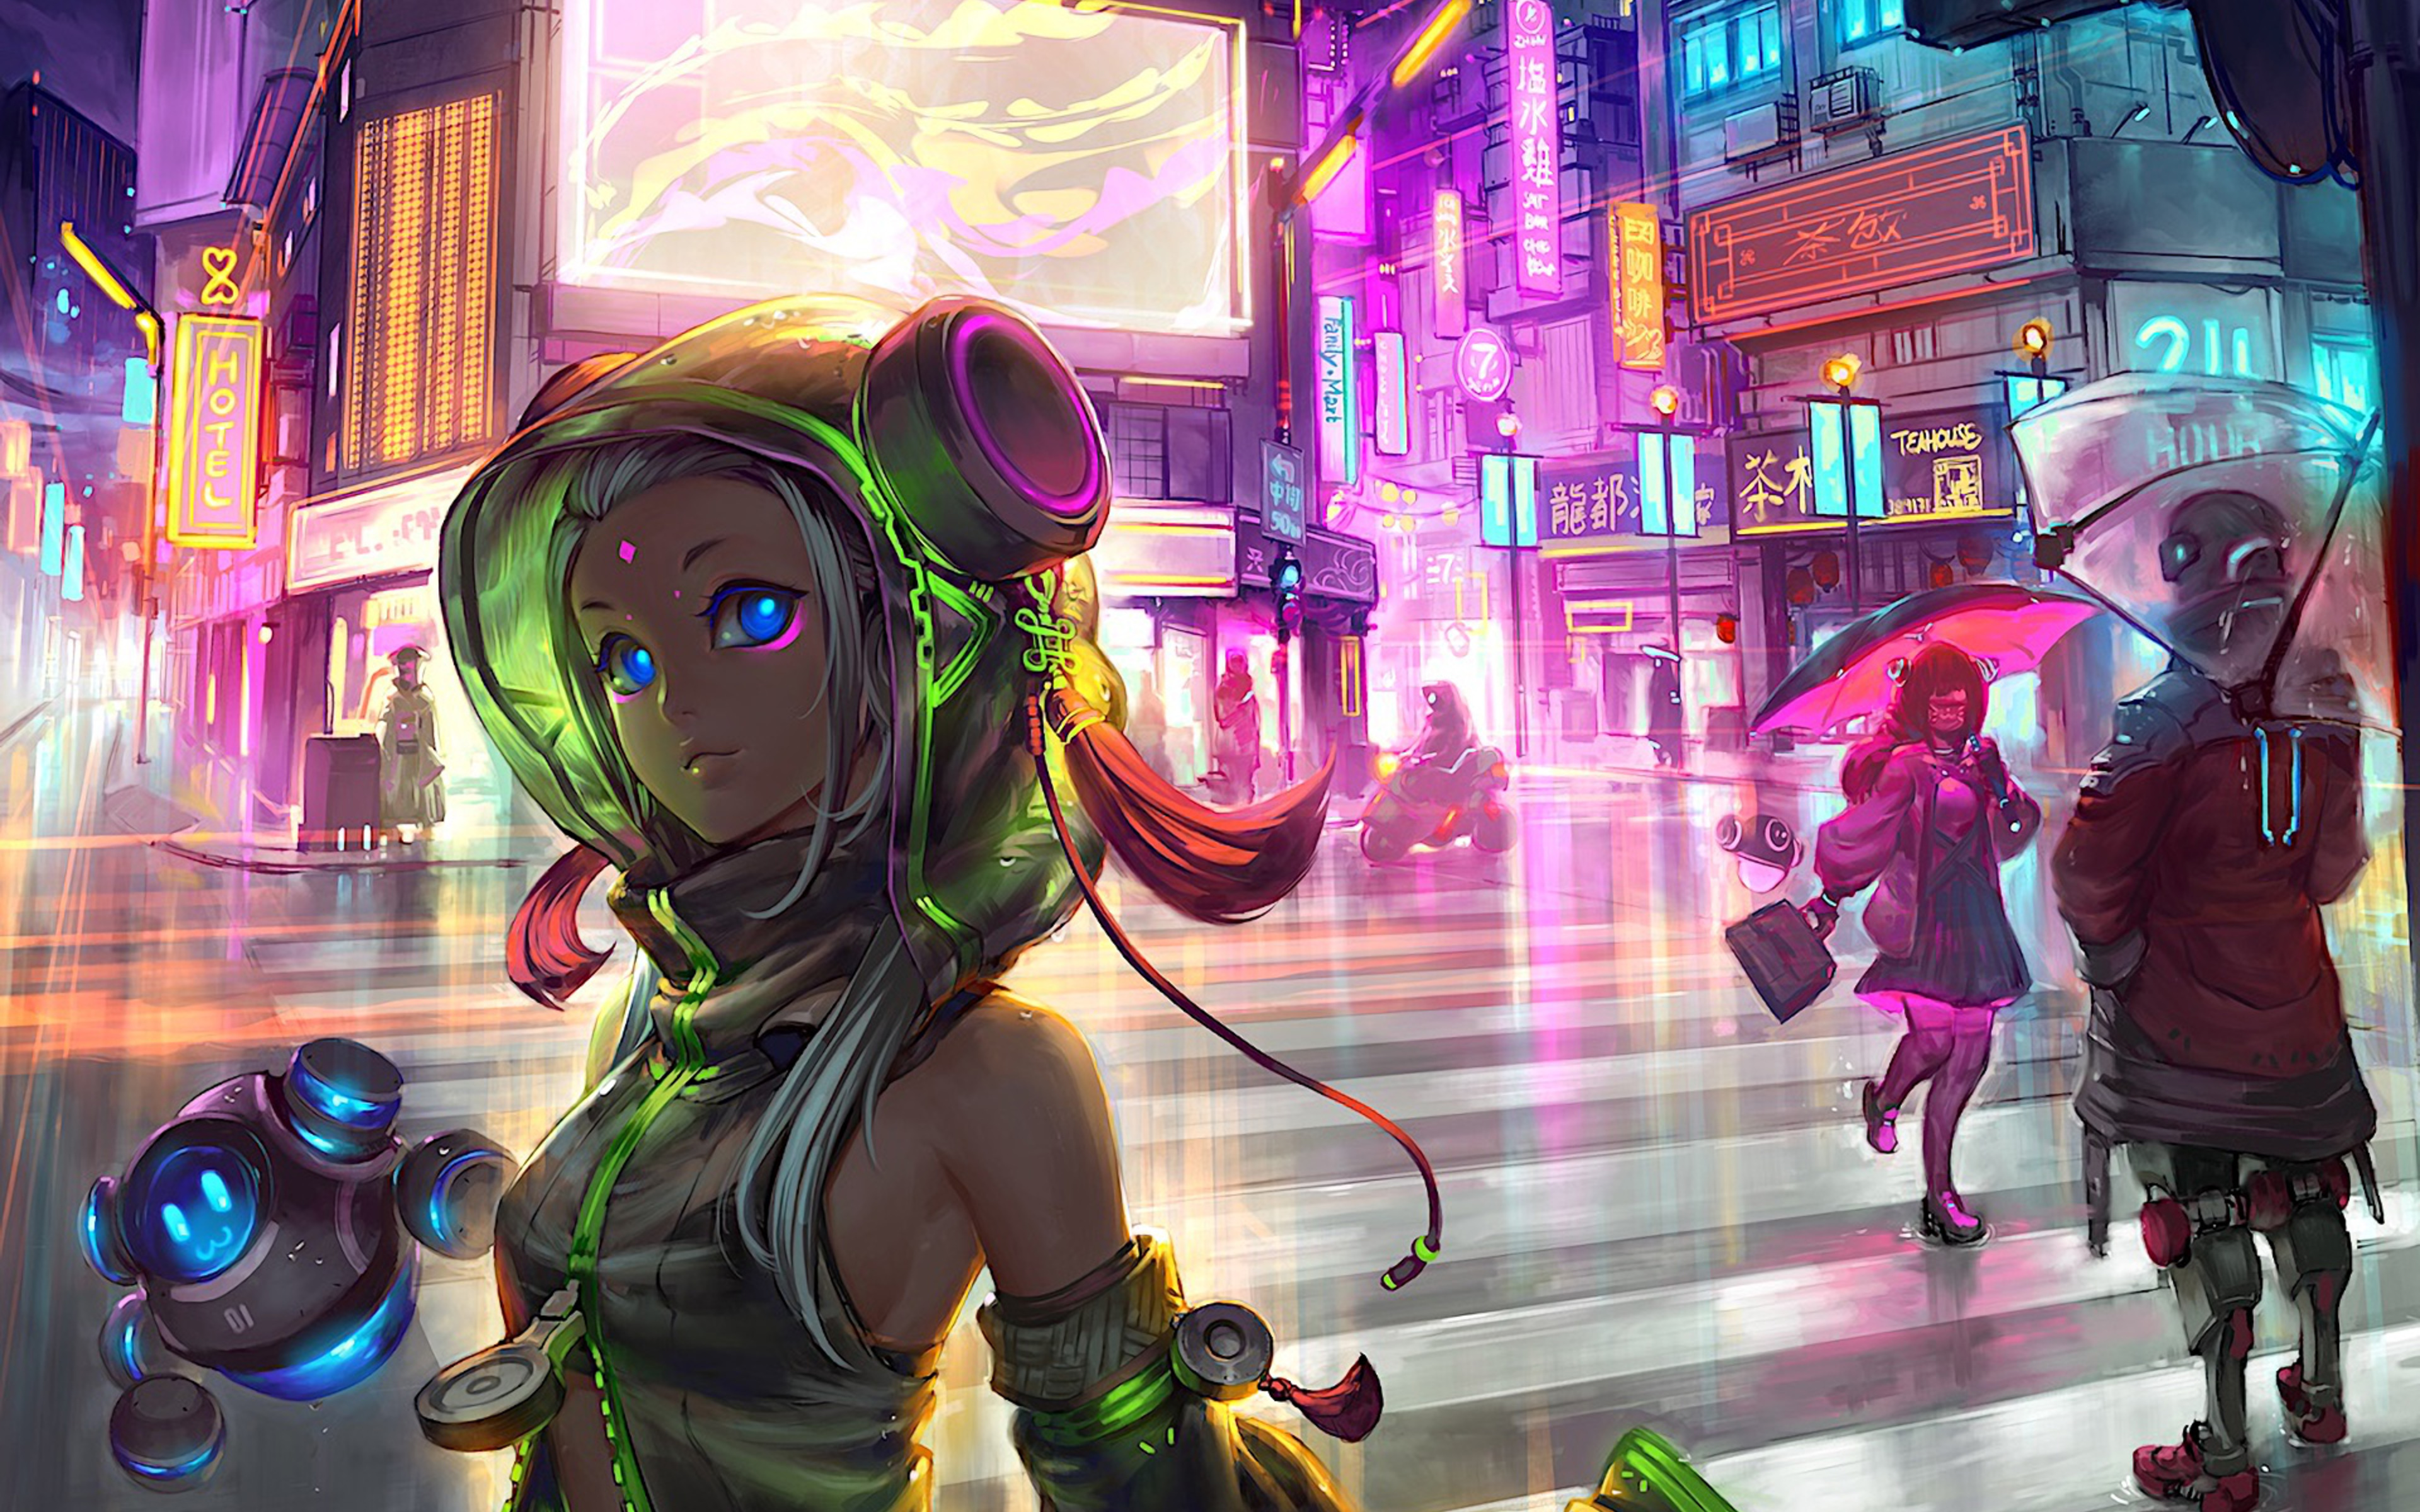 3840x2400 Anime Cyberpunk Scifi City 4k HD 4k Wallpapers ...